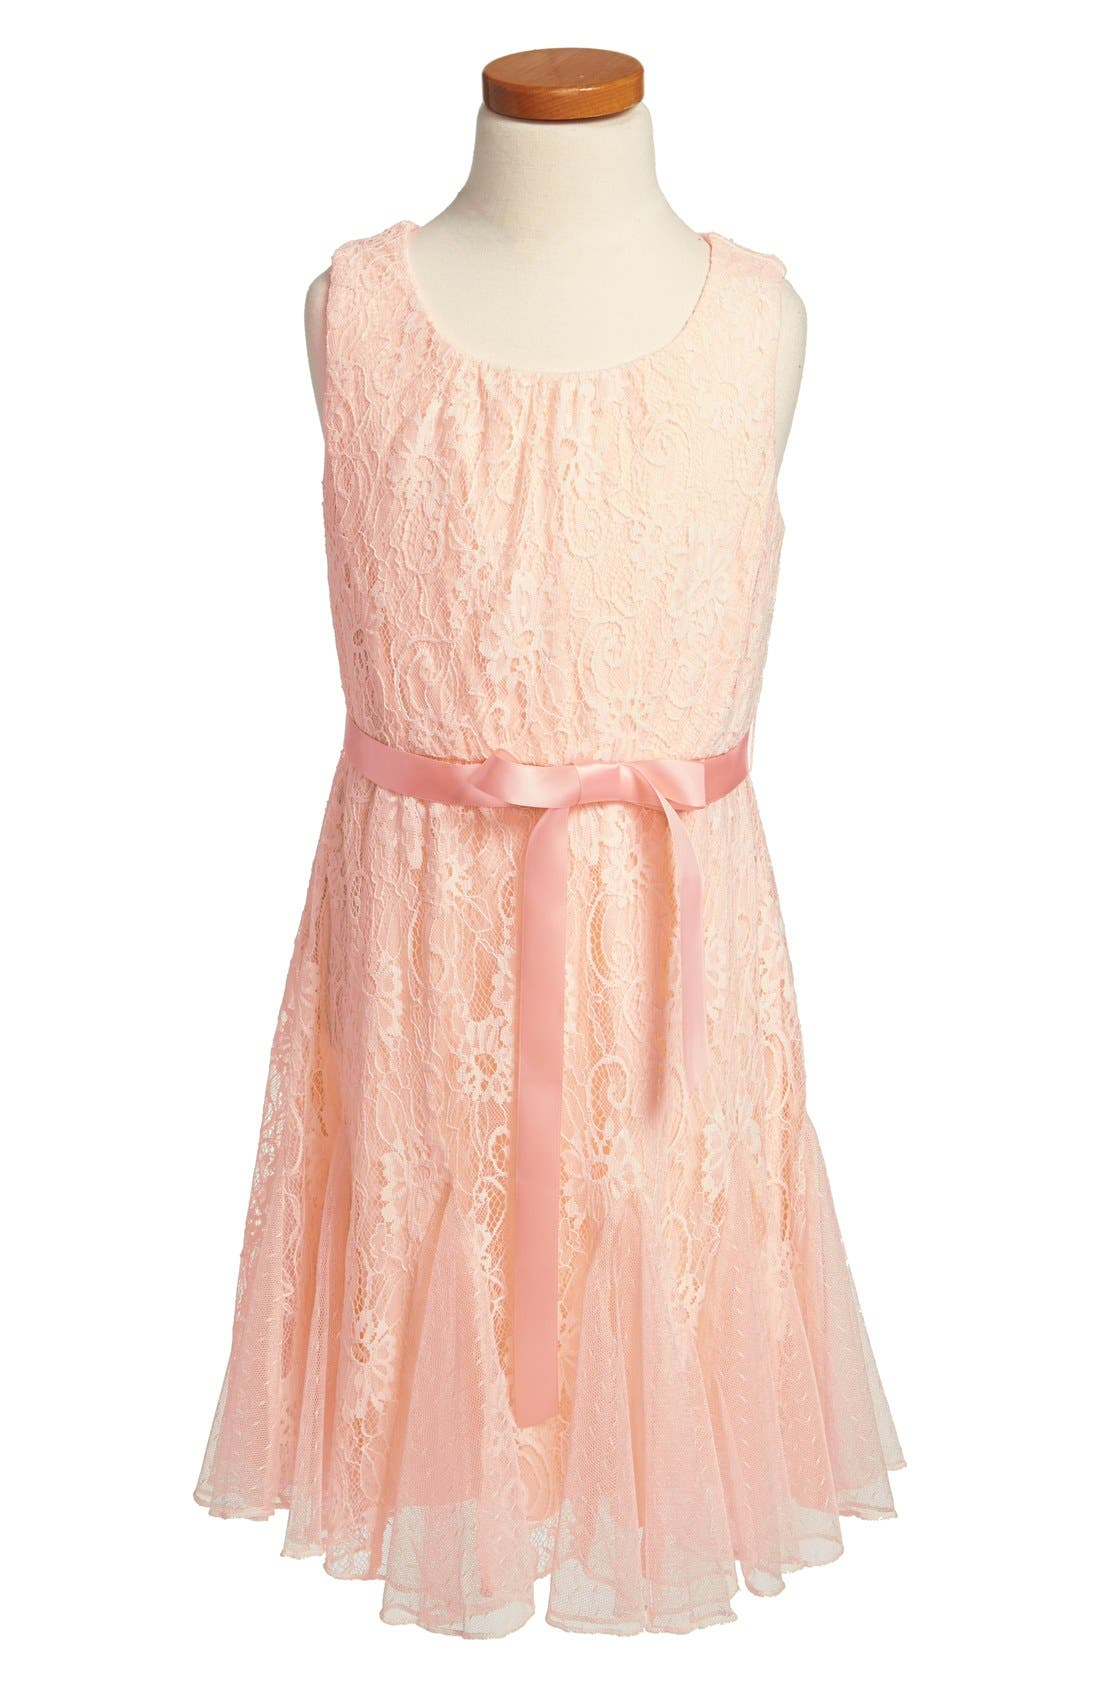 Alternate Image 1 Selected - Roxette Sleeveless Lace Dress (Big Girls)